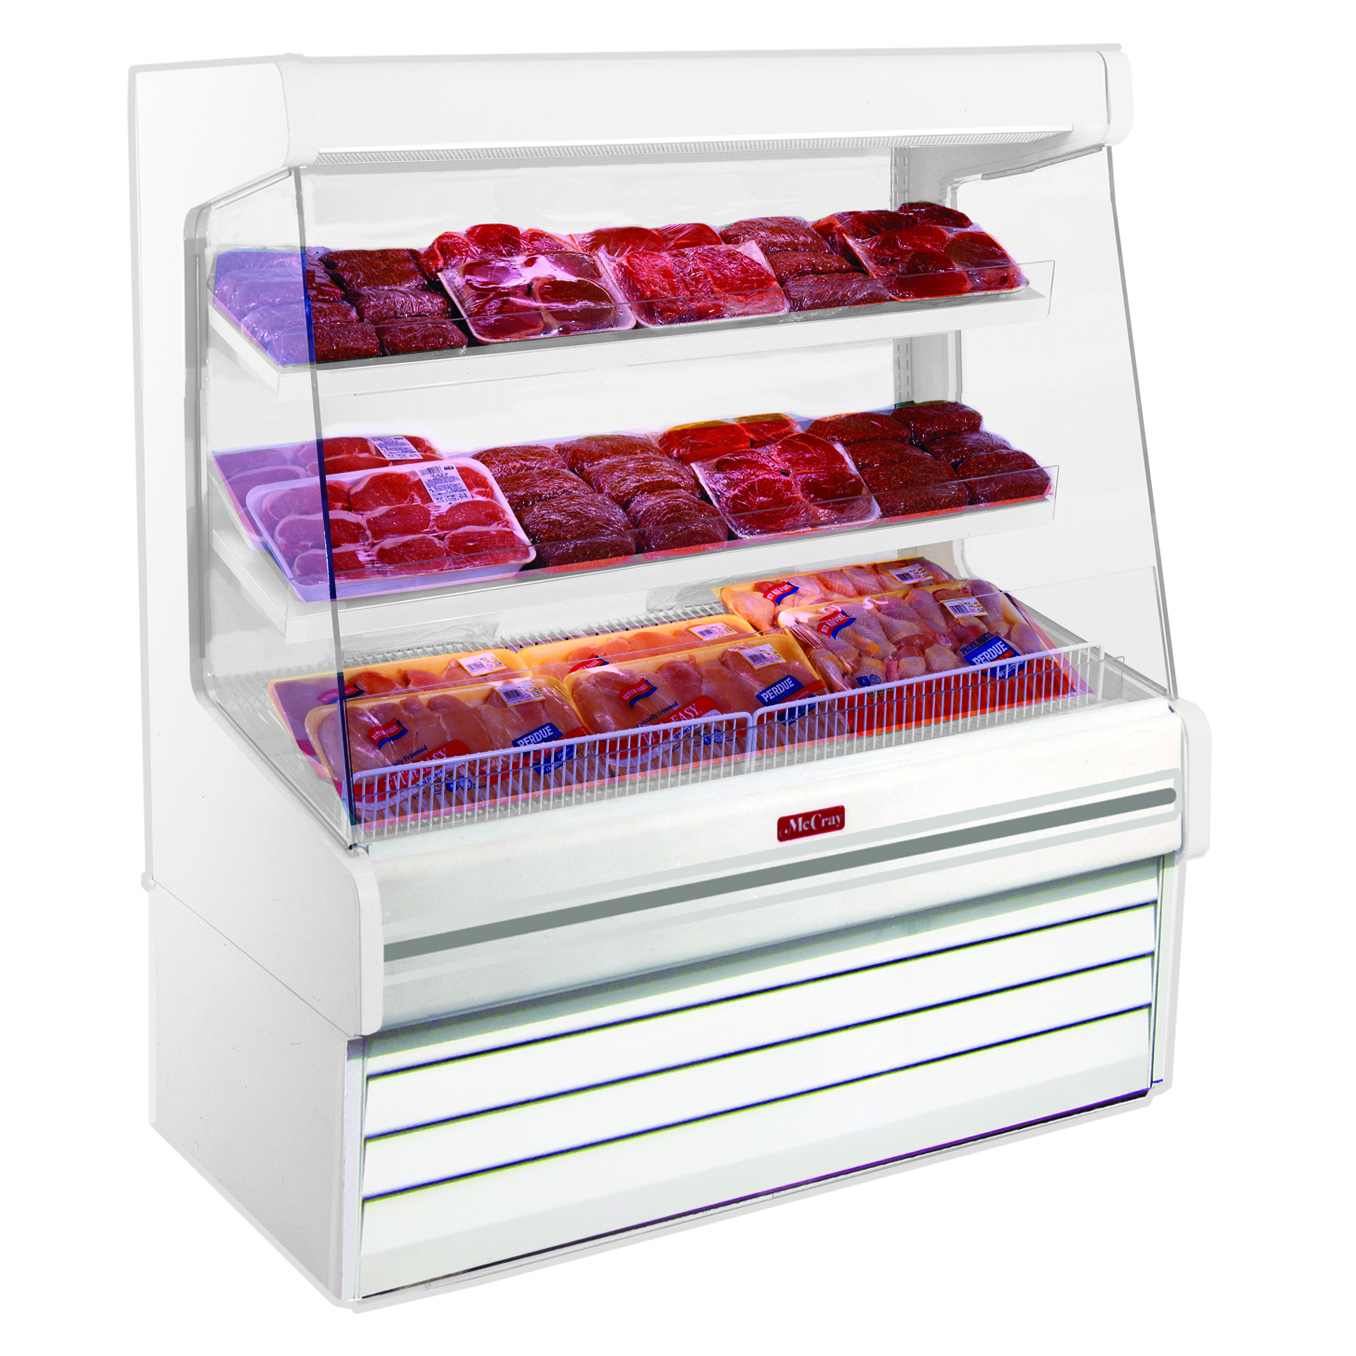 Howard-McCray SC-OP30E-6L-LED display case, produce